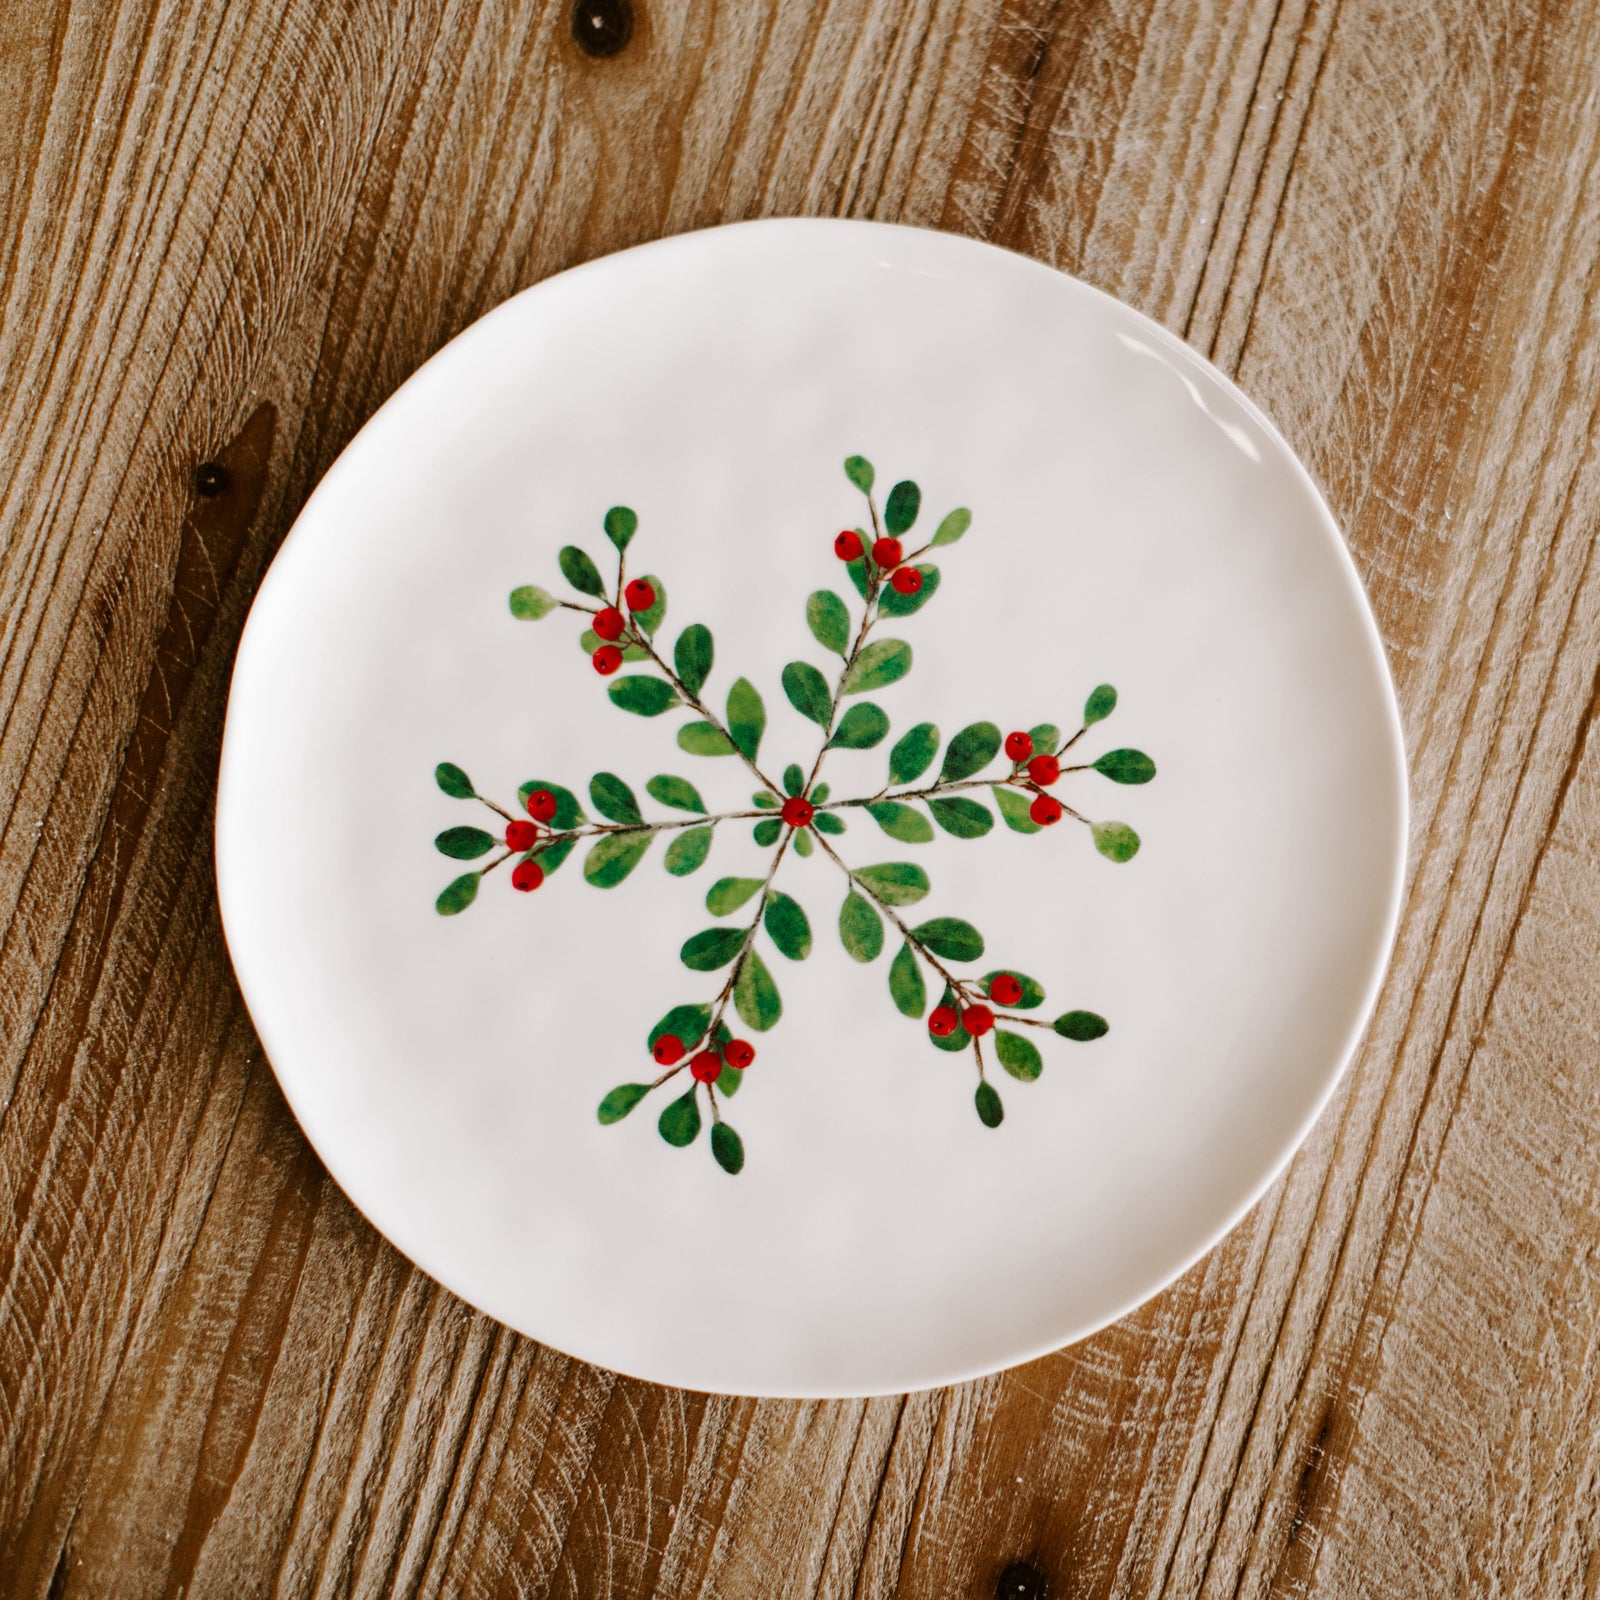 A 9 inch diameter winter plate with a pattern of twigs, light green leaves and berries forming a snowflake type of pattern resting on a holiday dinner table